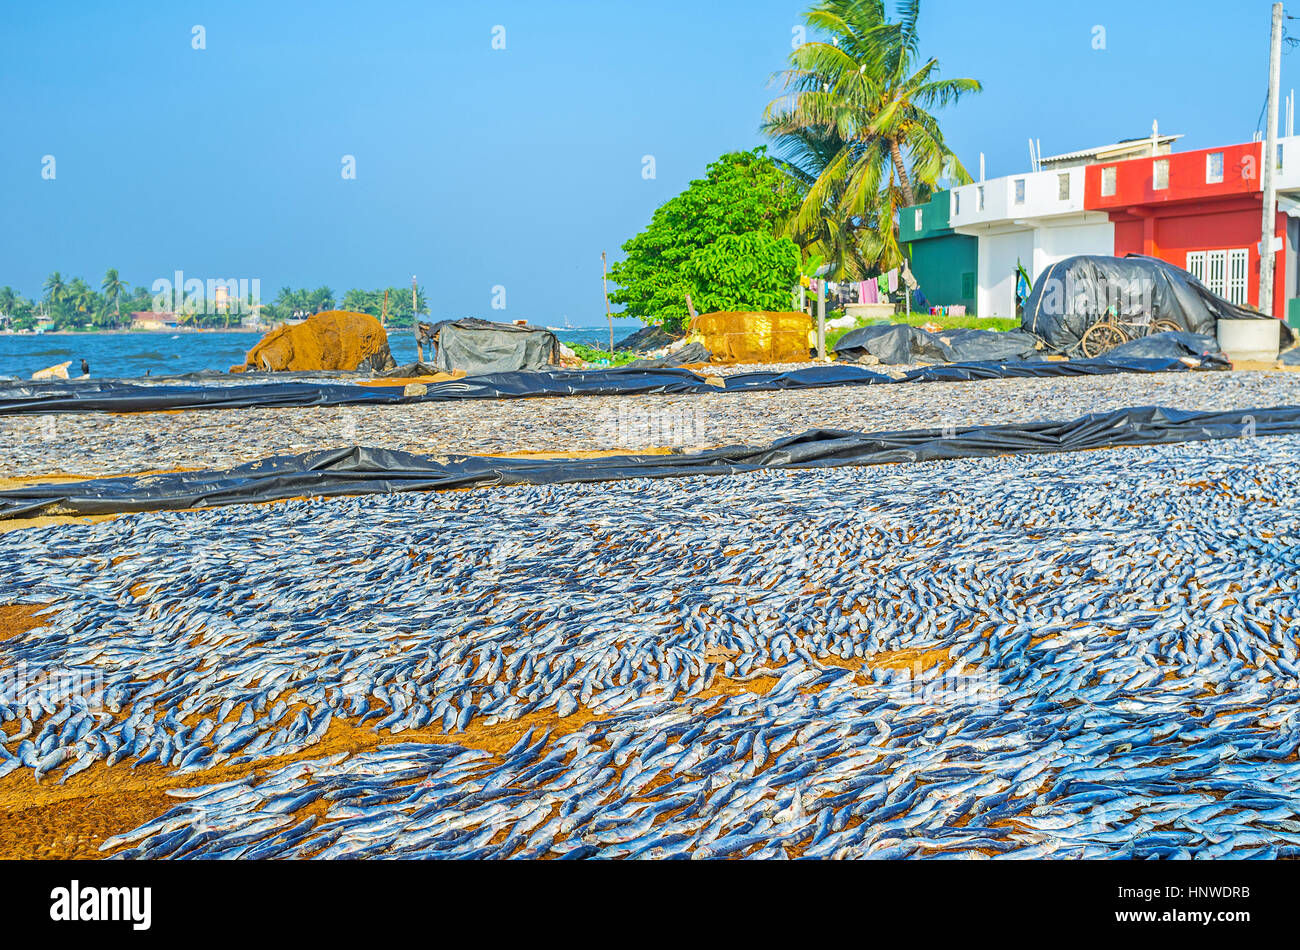 The traditional method of drying anchovies is used by fishermen of Negombo, Sri Lanka. Stock Photo